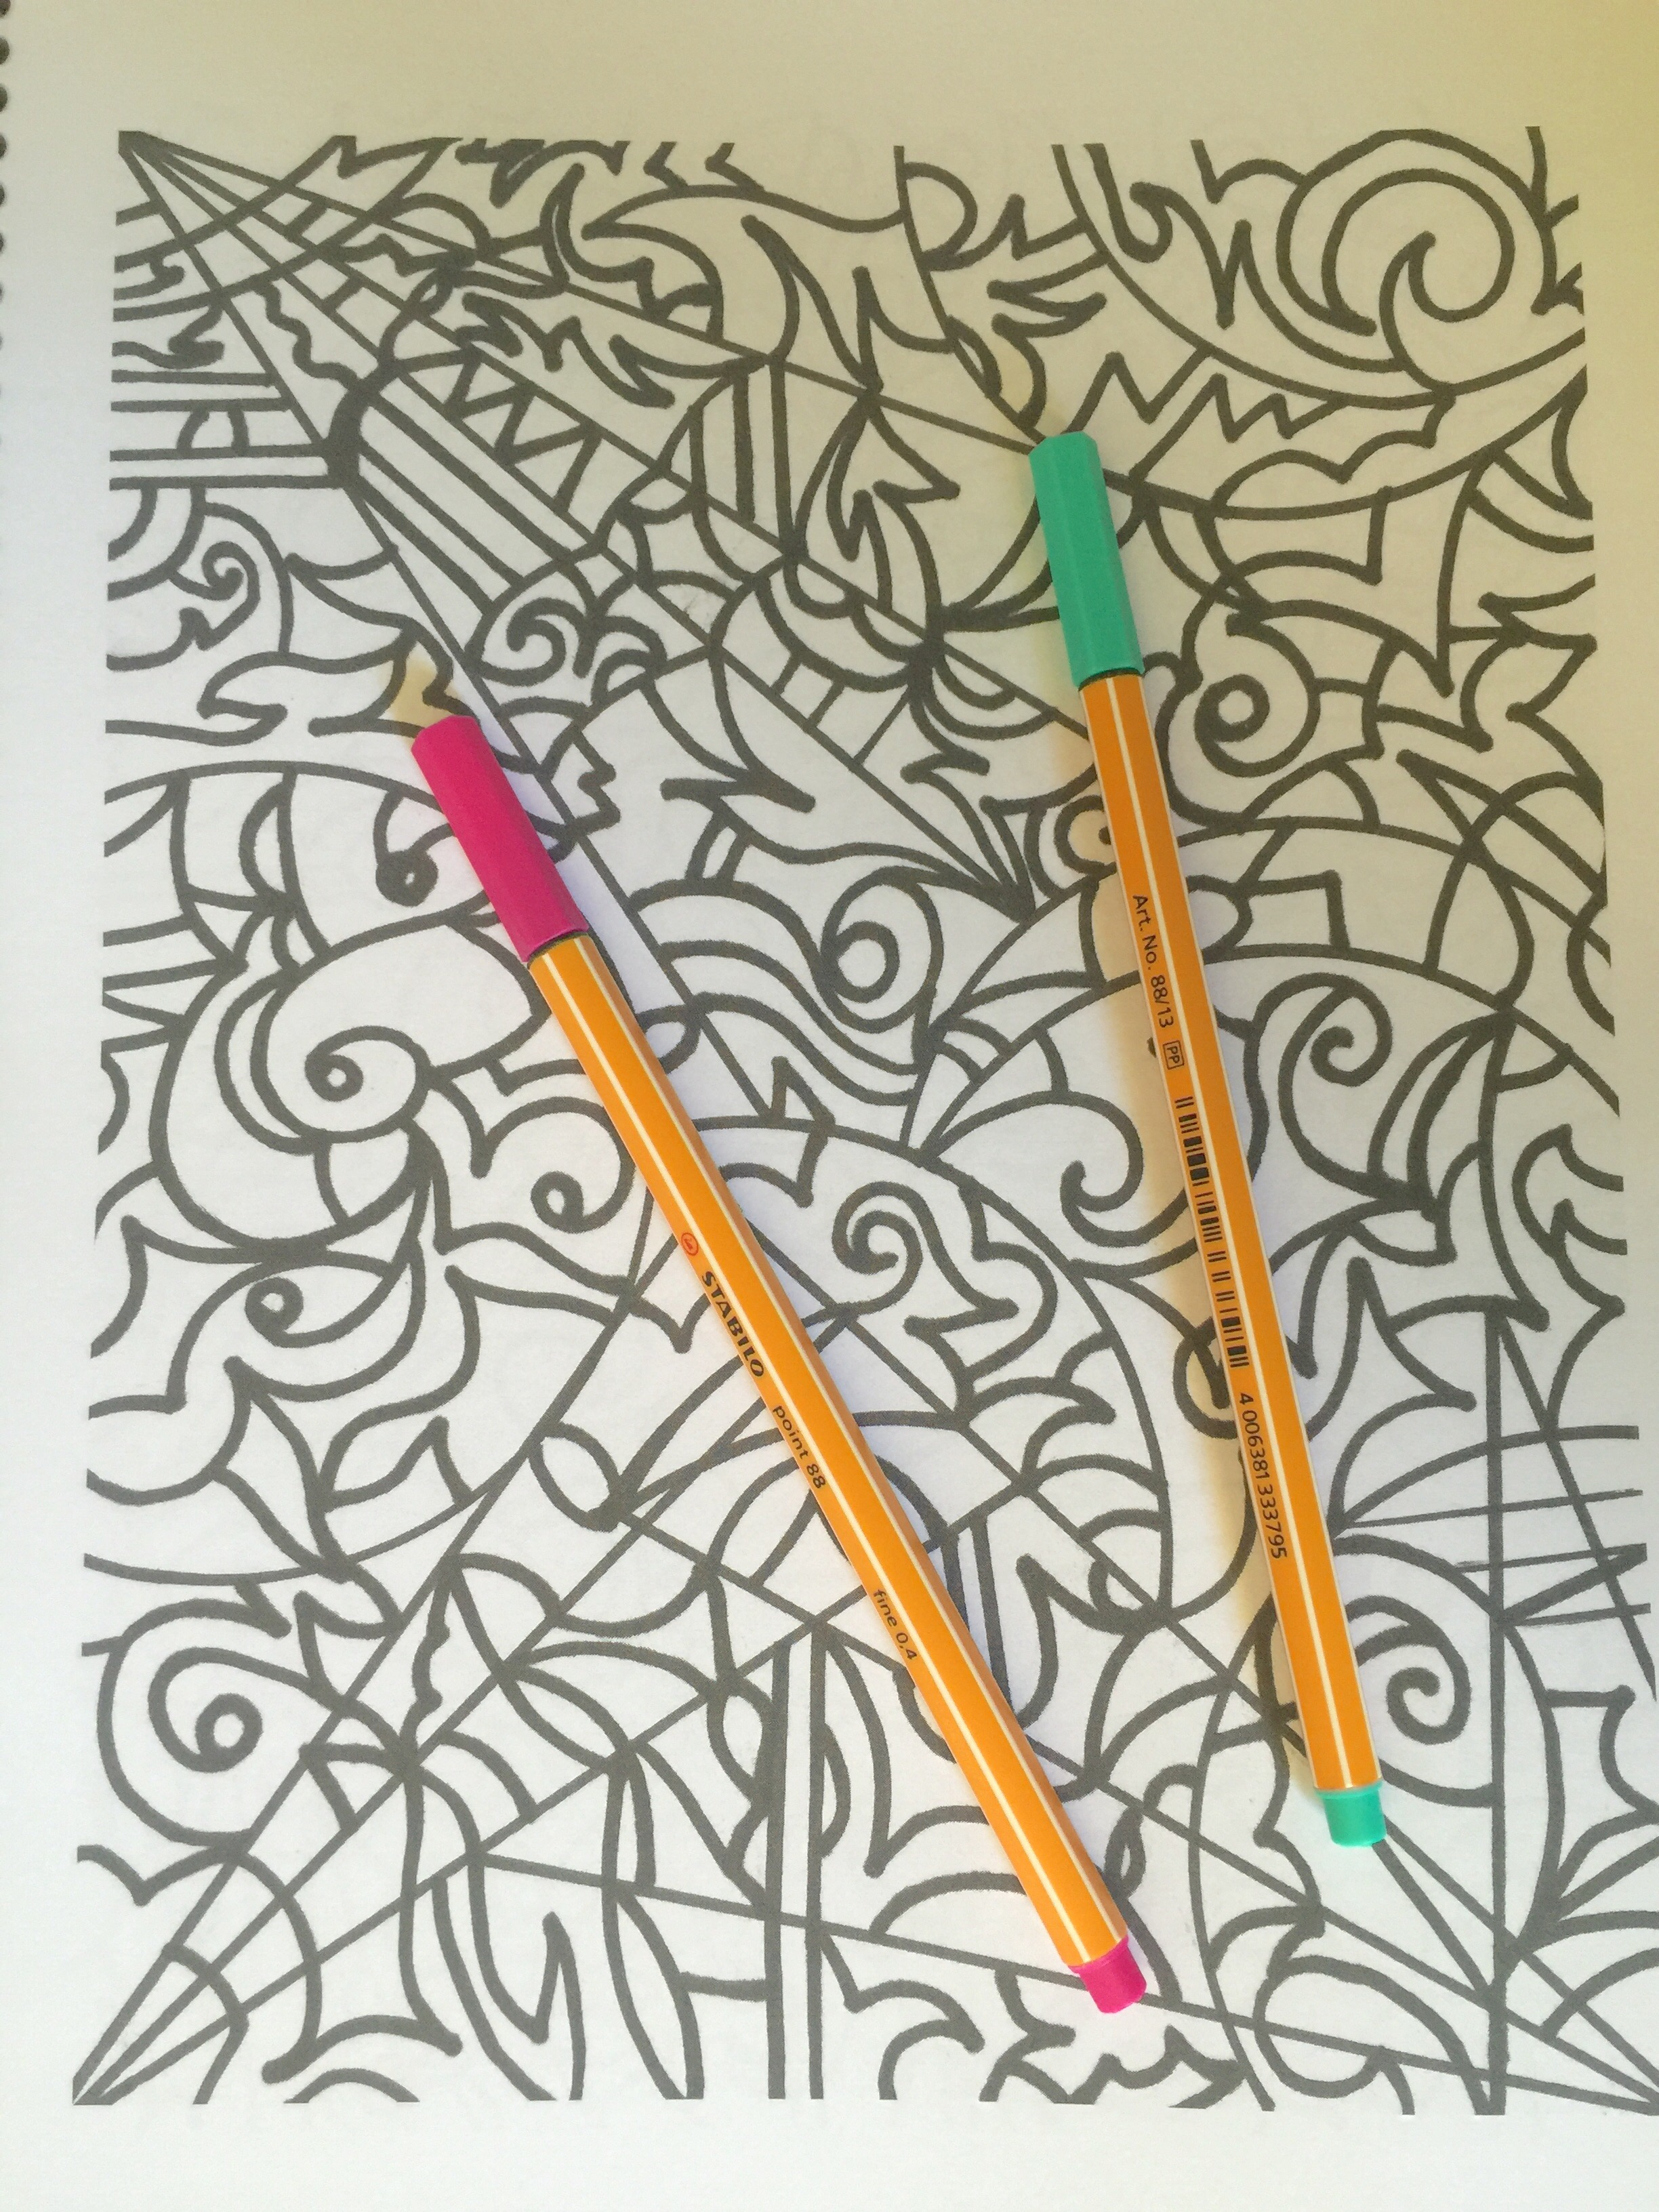 coloring adult colouring pencils crayons art therapy stress relief colored coloured colouring coloring